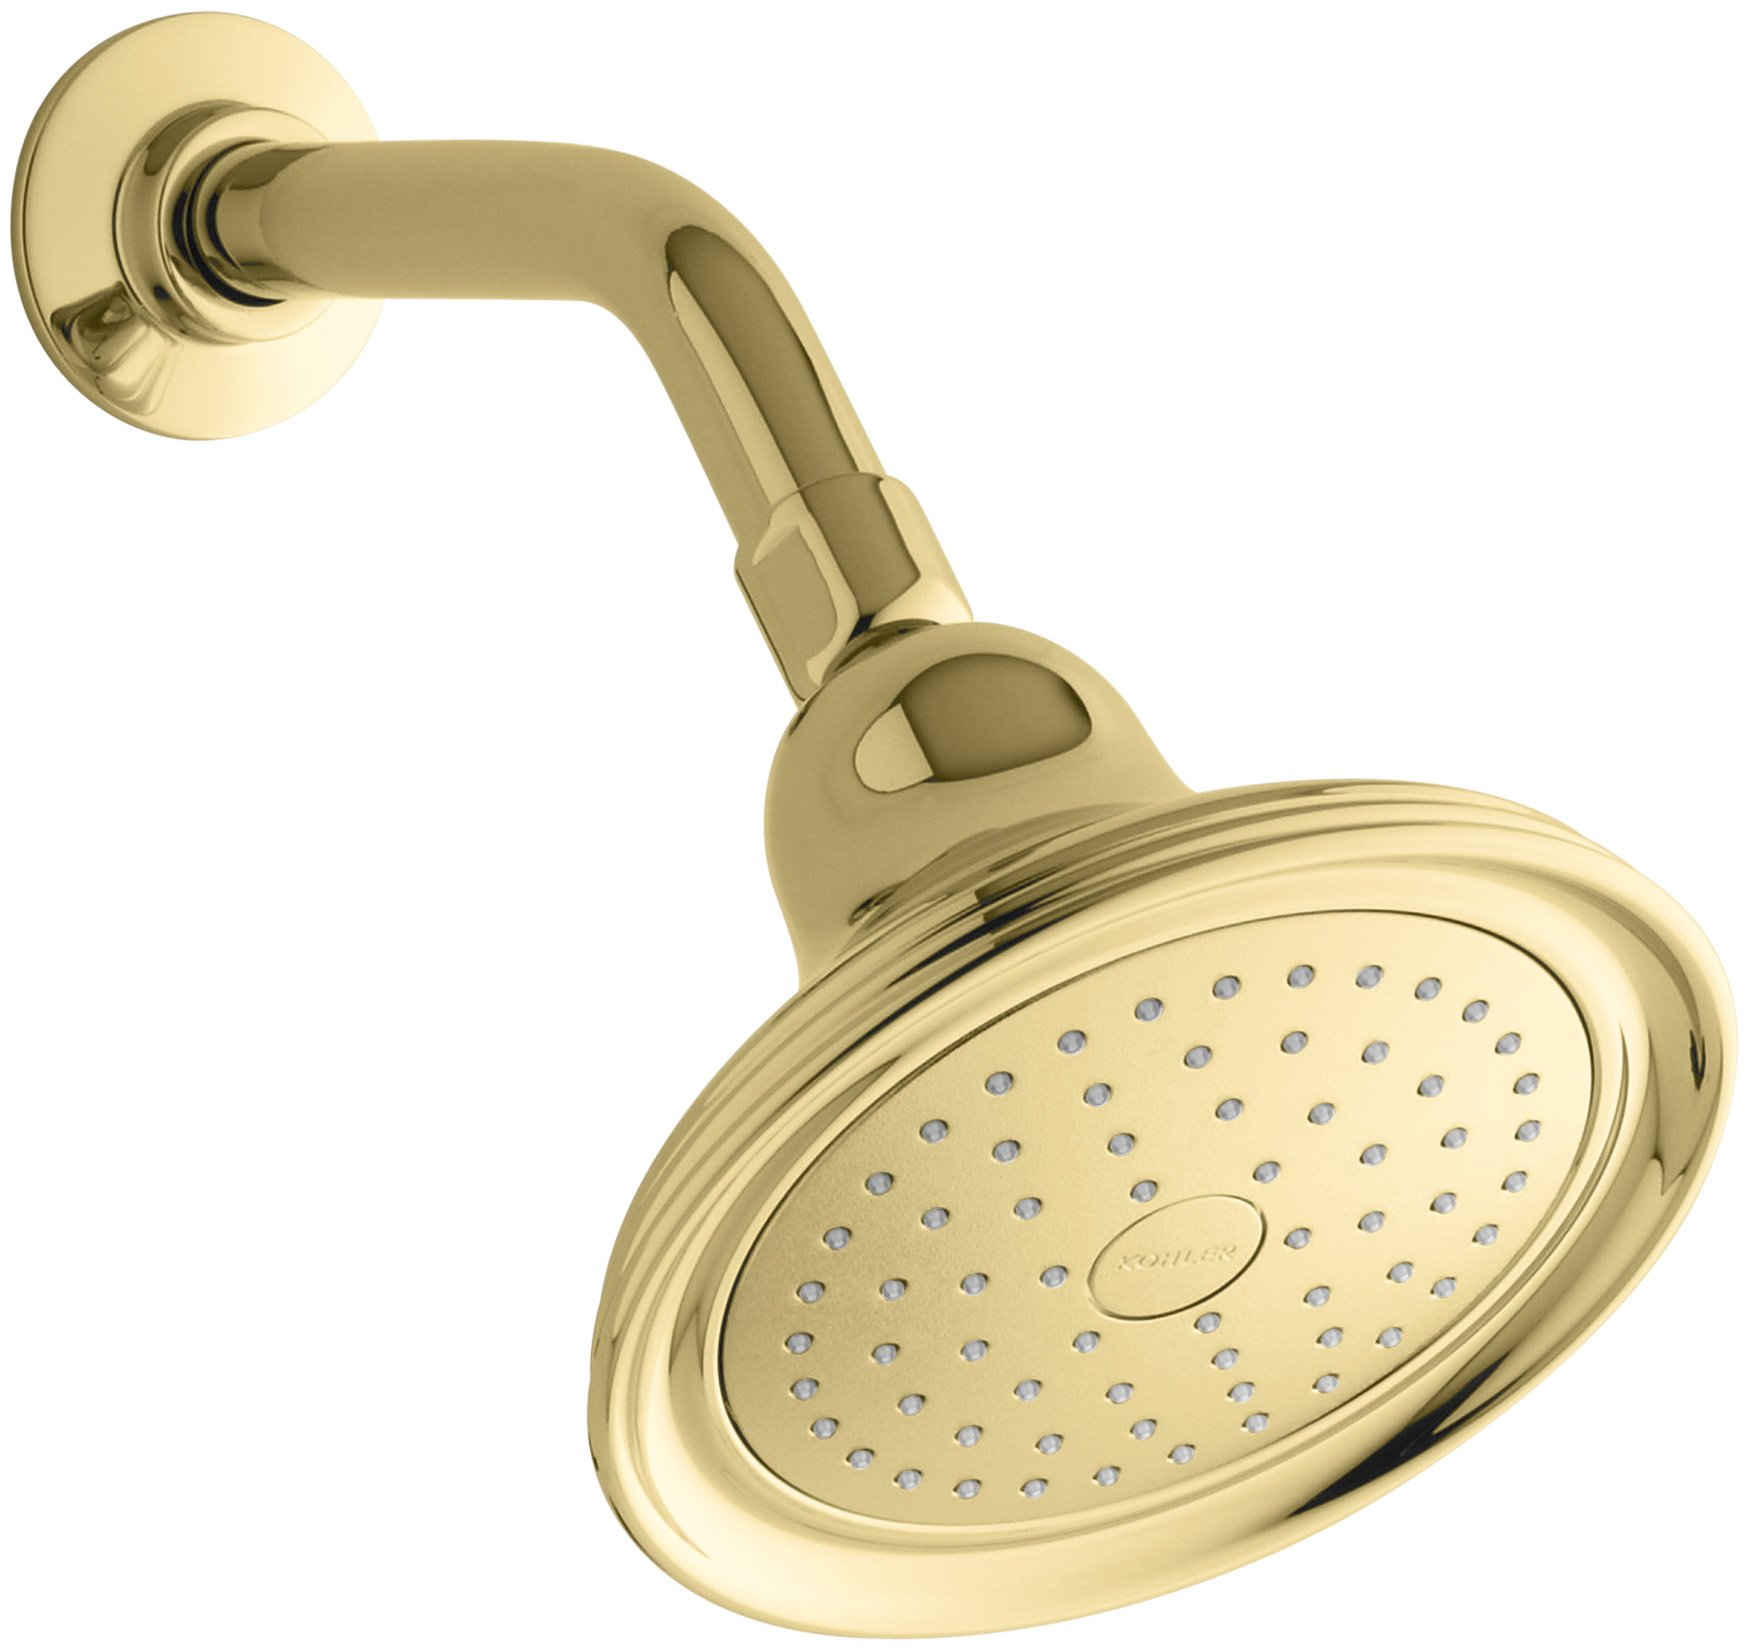 Kohler K-10391-AK-PB Devonshire Single-Faucet Katalyst Showerhead, Vibrant Polished Brass